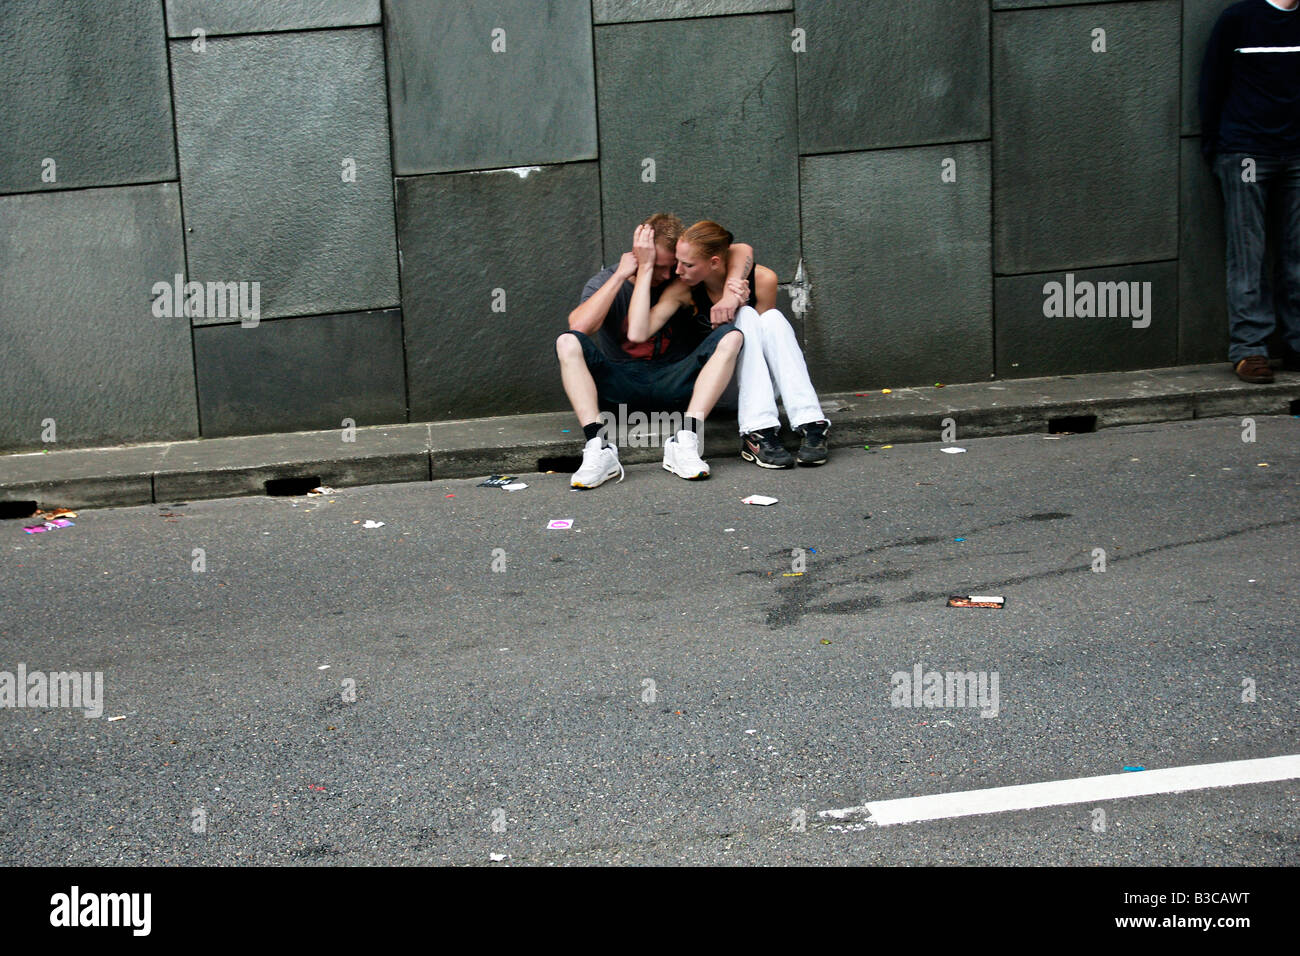 Desperate couple sitting in front of depressive grey concrete wall while paritally obscured man standing nearby. - Stock Image